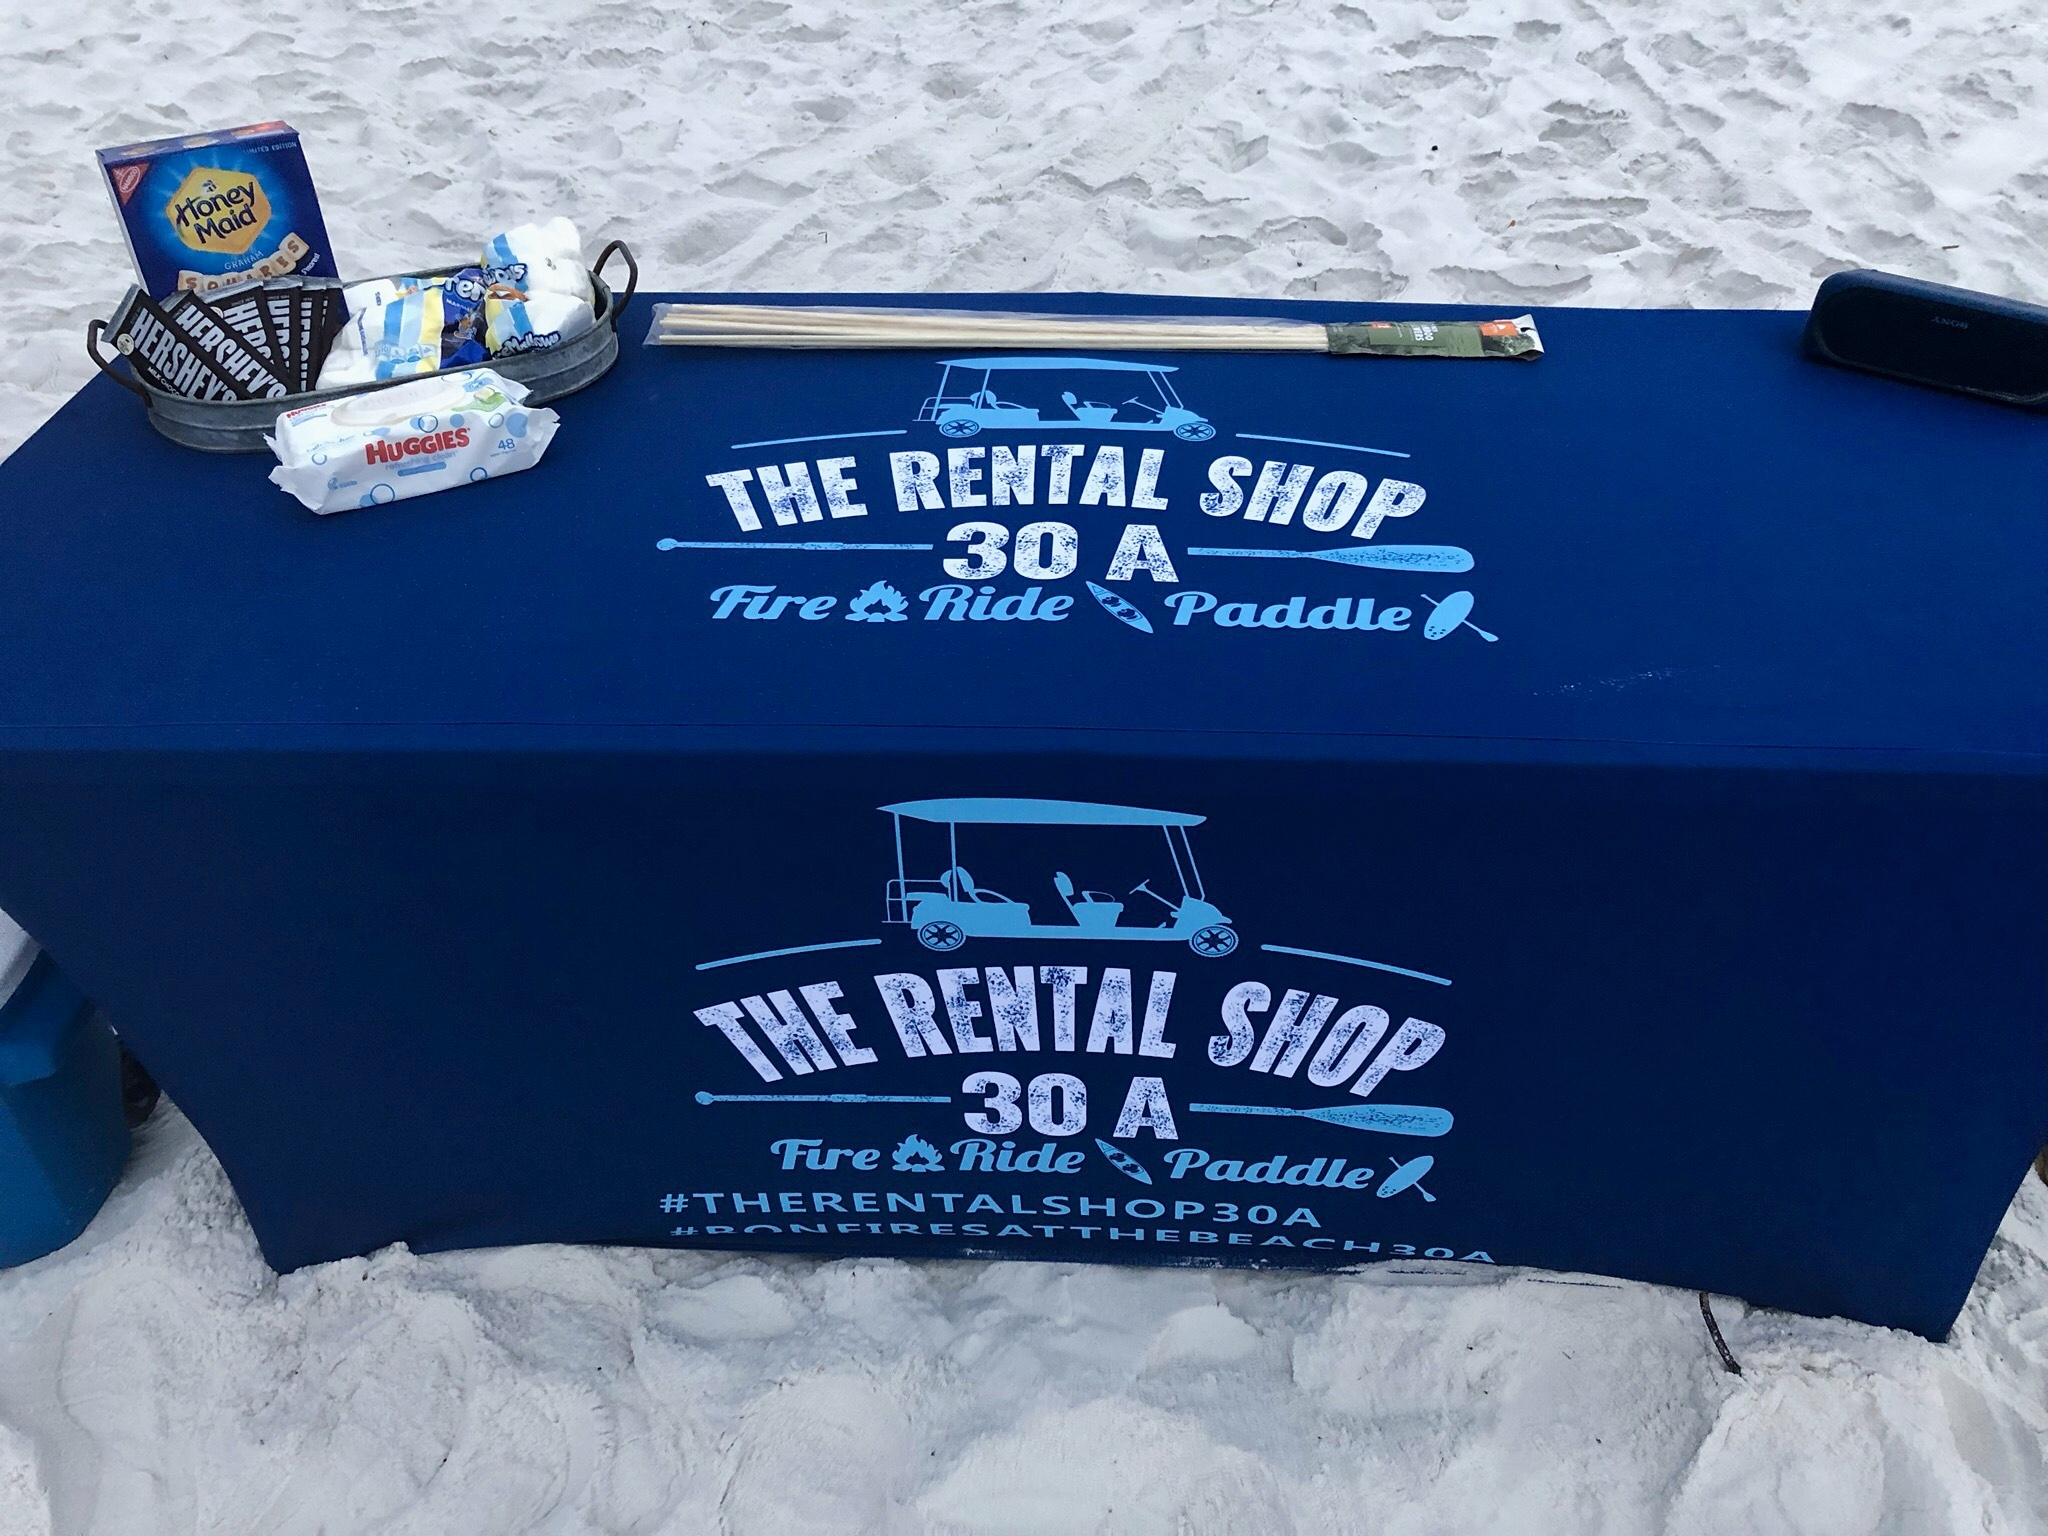 The Rental Shop 30A Smores with Beach Bonfire on table